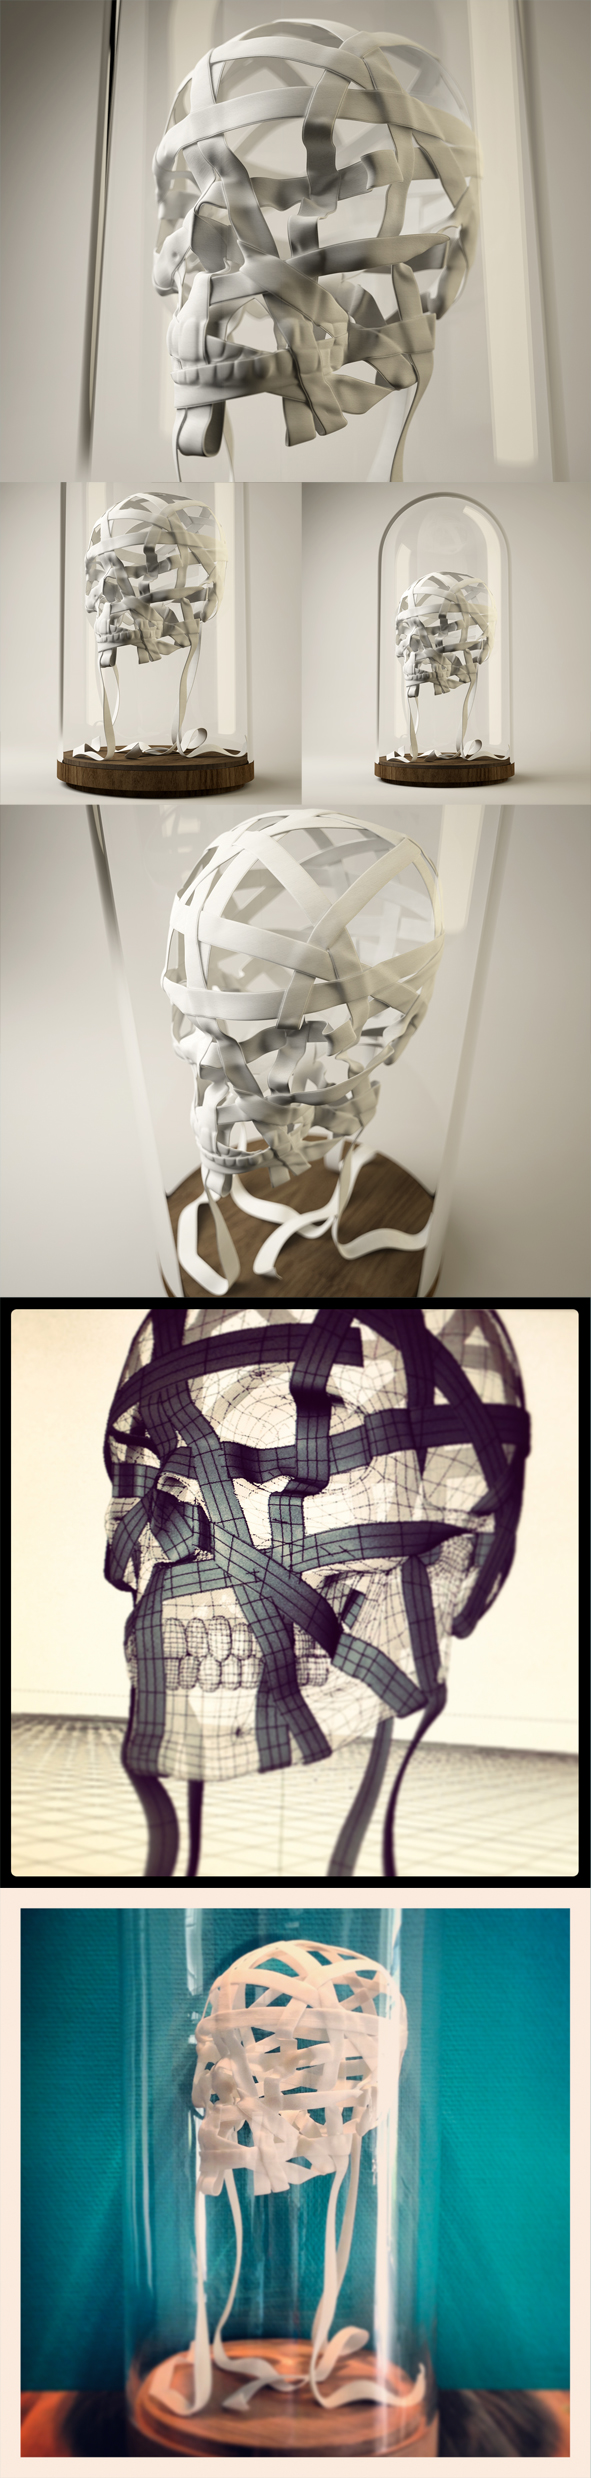 The Ribbon Skull    ☛ 3dPrinting Sculpture, wood and glass bell, 2011 ✰     Allegory of the bonds that links human and humanity together, the Ribbon  Skull, is a strong wish of a new peaceful era.    This Sculpture is  visible at the Galerie Matignon, 18 avenue Matignon, 75008 Paris   http://eroheduazac.com/the-ribbon-skull   Erohe  du Azac Ribbon Skull Crane Ruban Tree art sculpture design 3D Printing  laser life human anatomy  #Ribbon   #Skull   #Crane   #Ruban   #Tree   #art   #sculpture   #design   #3D   #Printing   #laser   #life   #human   #anatomy